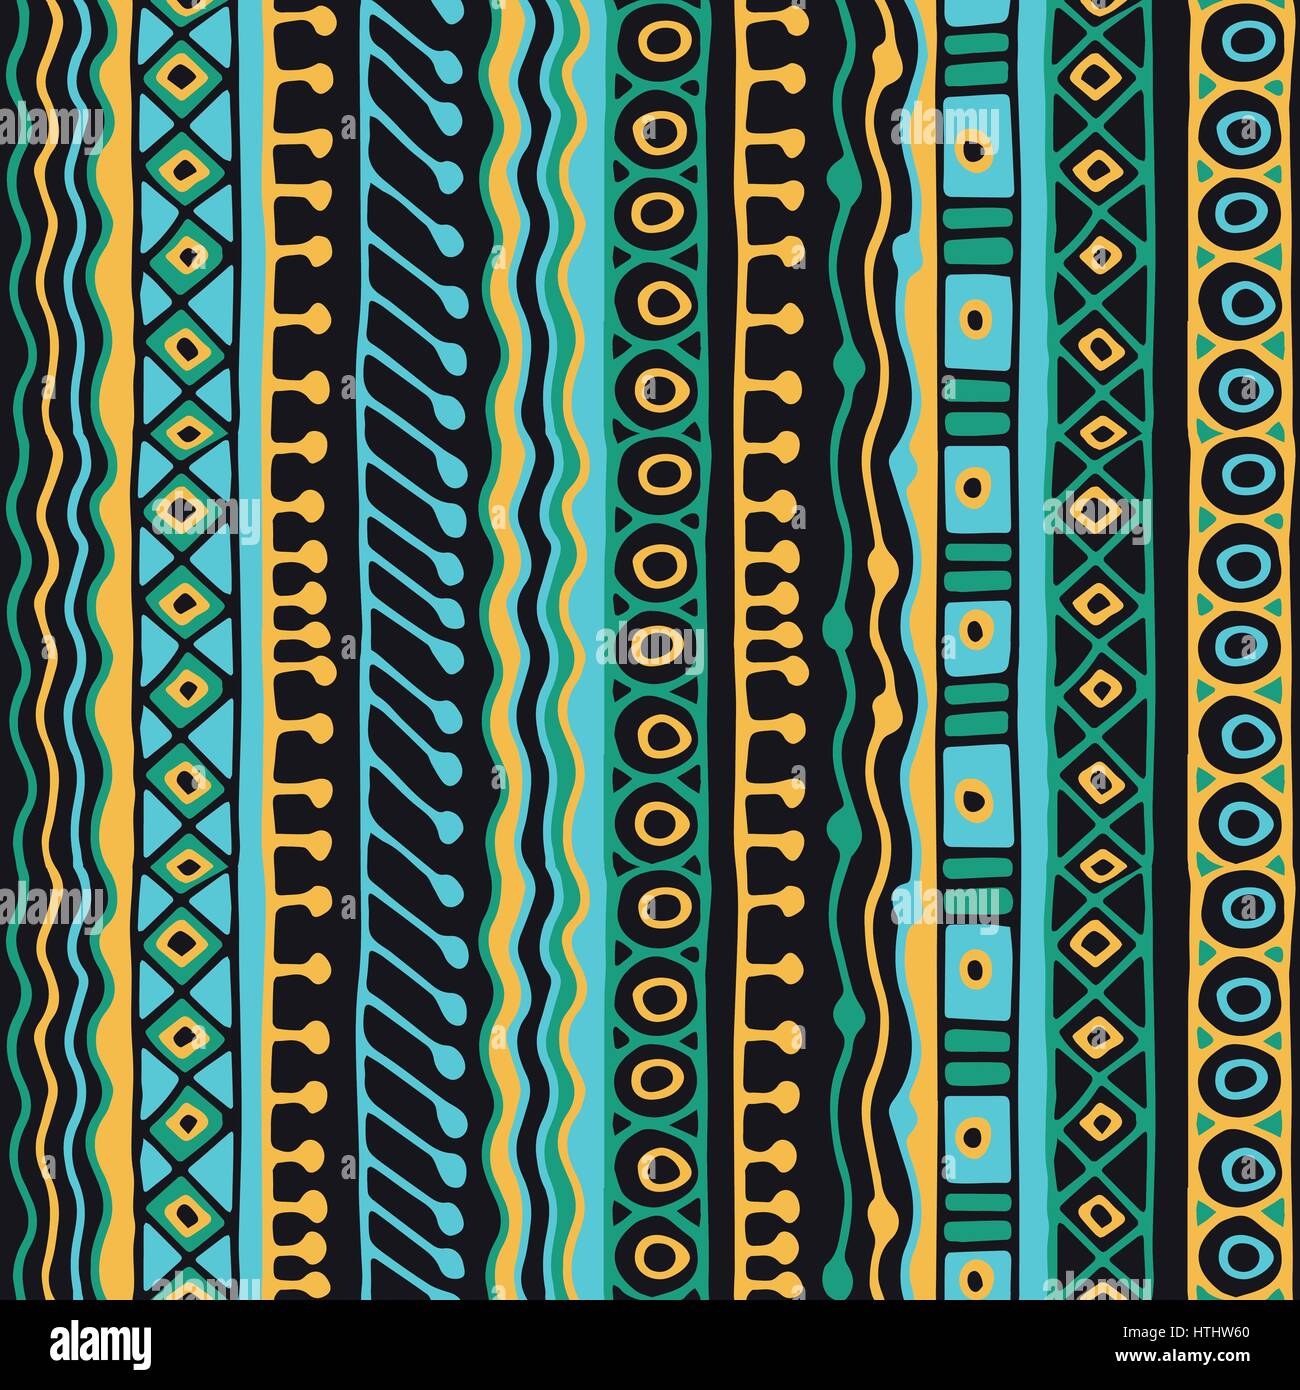 Boho Style Ethnic Wallpaper Tribal Art Print Old Abstract Borders Background Texture